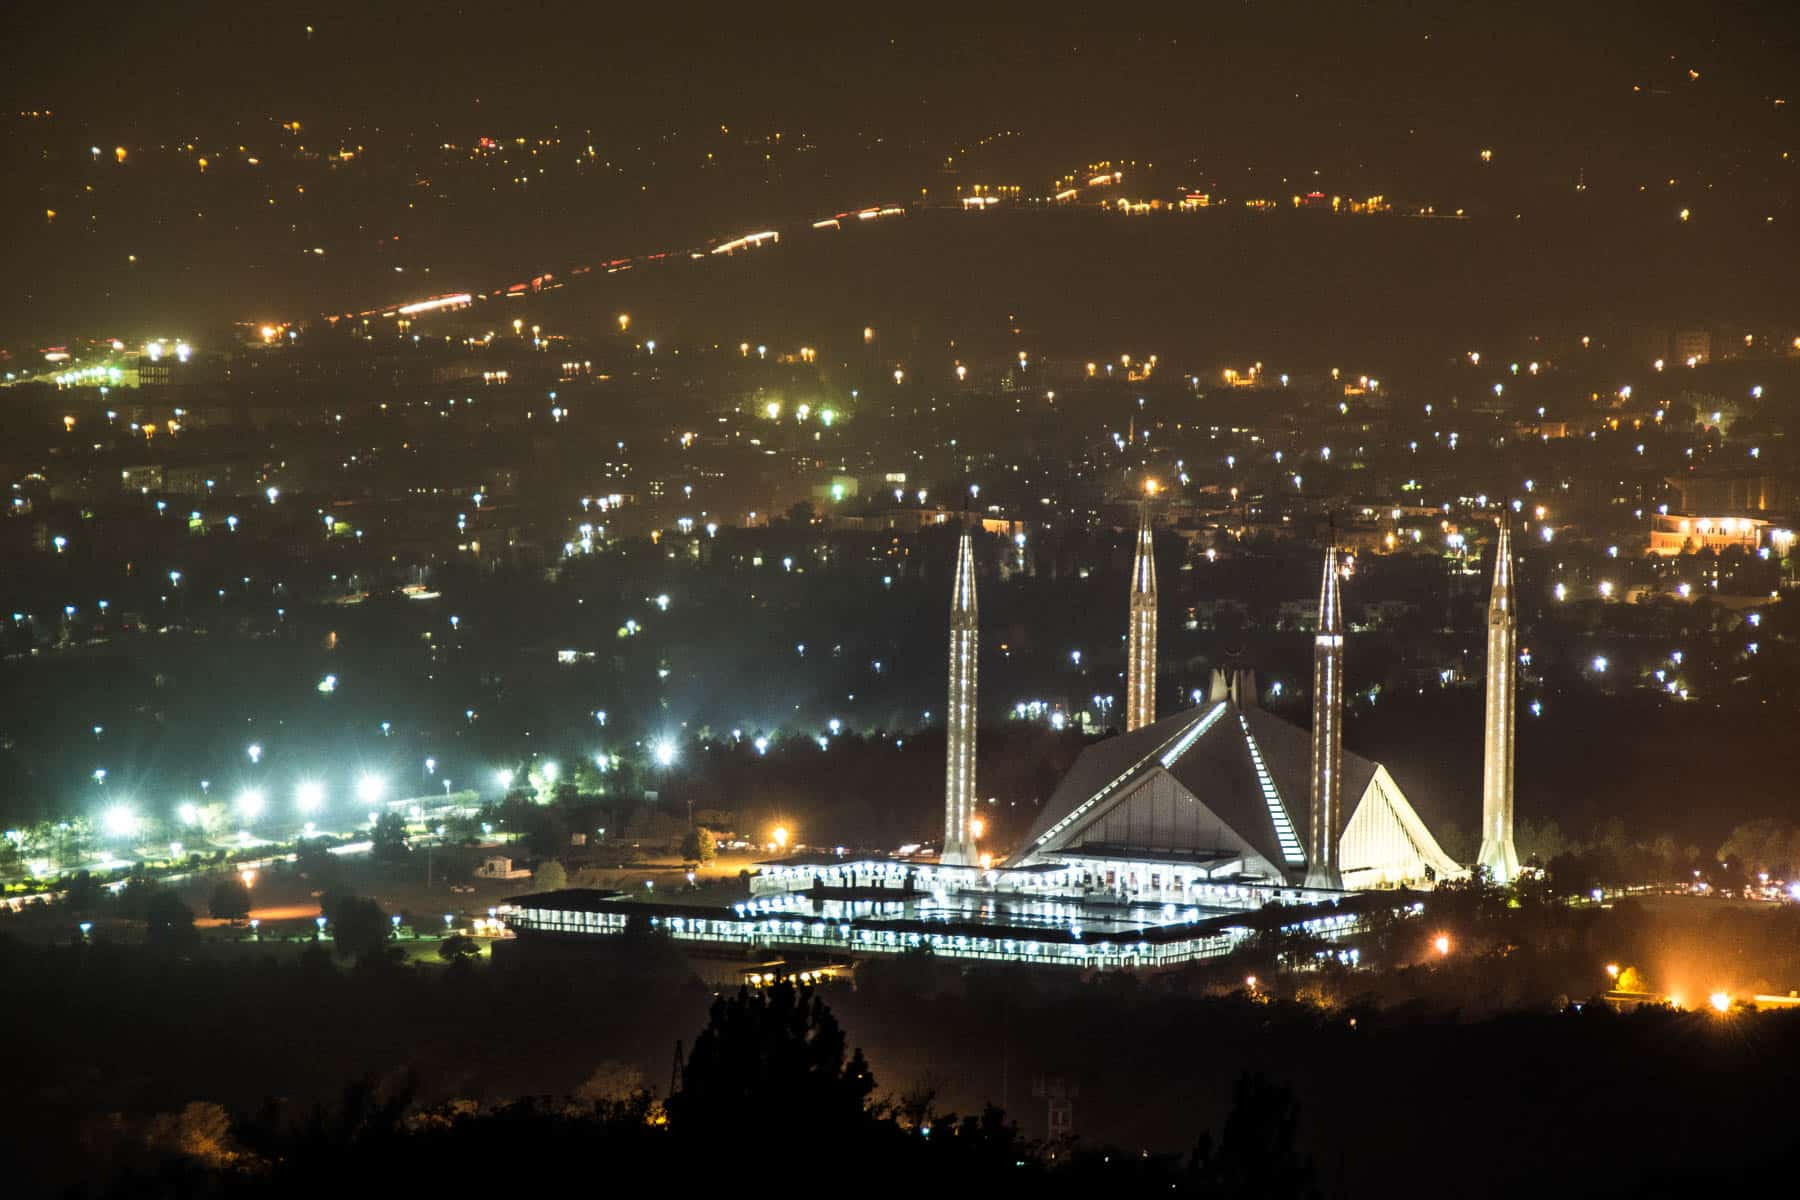 Islamabad, Pakistan from above at night